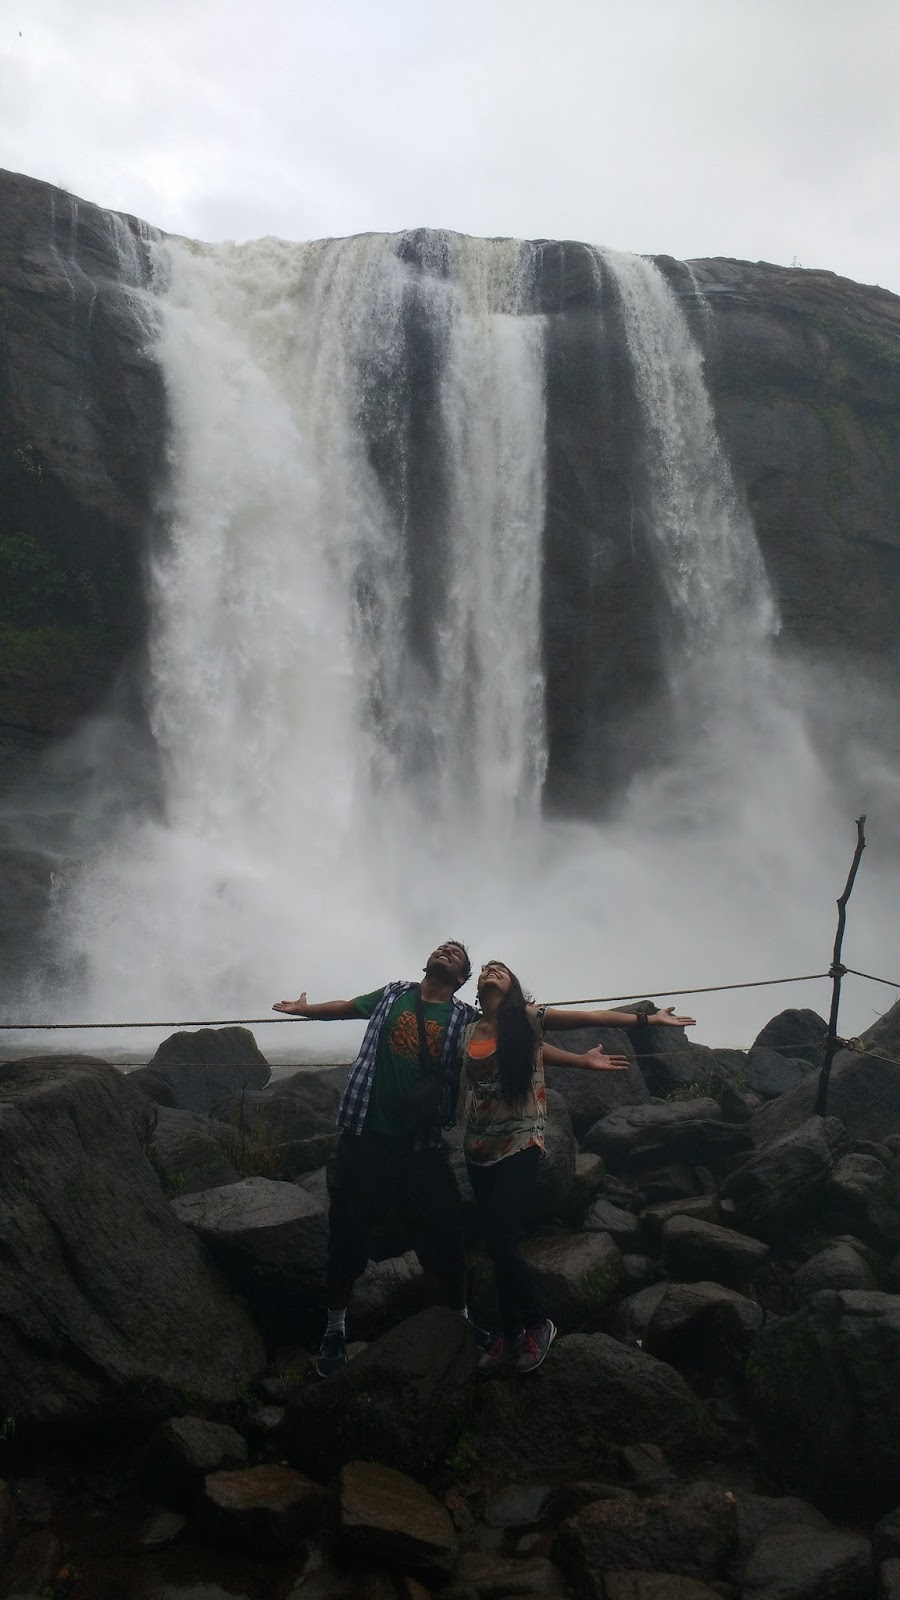 Athirapalley waterfall